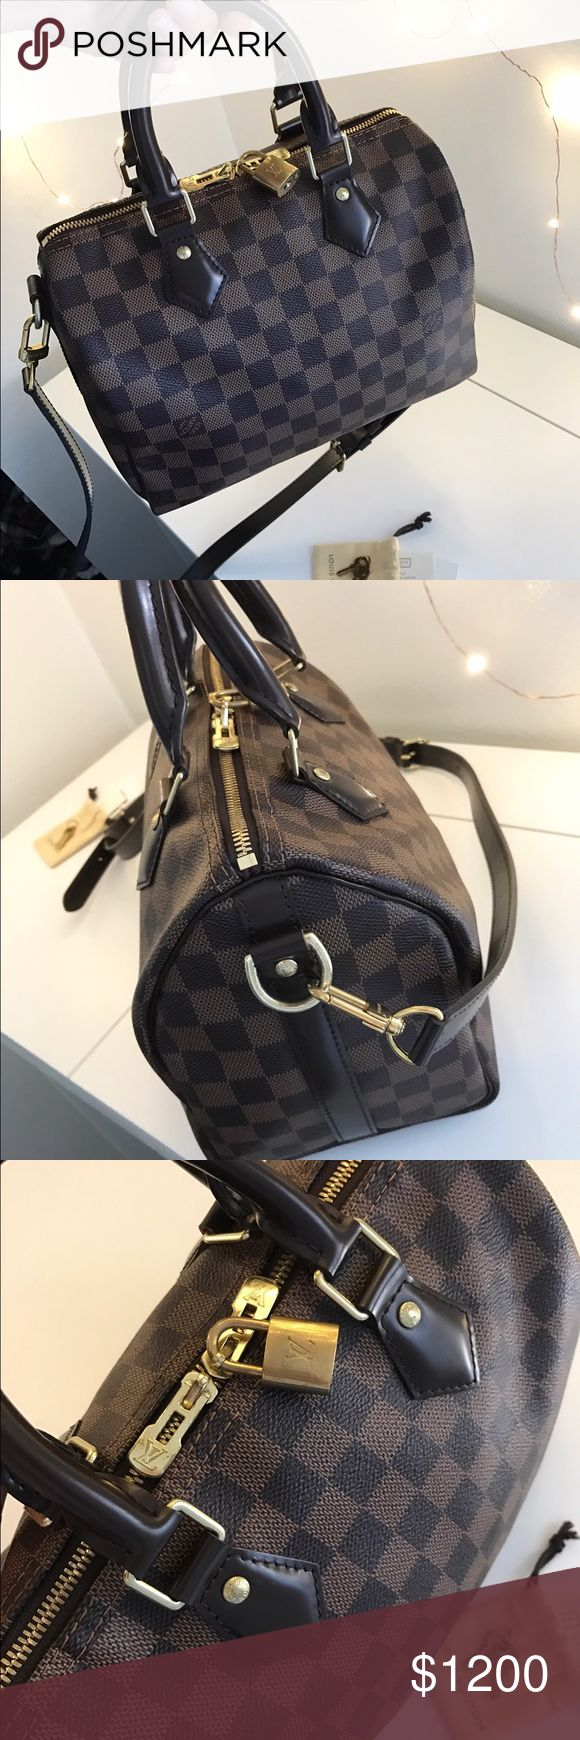 ✨Louis Vuitton Speedy 25 Bandouliere✨ 🔸LV Speedy 25 in Damien Ebene Canvas with the strap. 🔺Great Condition!🔺Has barely been taken out, as I was too protective of this baby✨ 🔹Comes with the keys and authenticity card, as well as a dust bag 💼 (Not LV dust bag) 📧Feel free to email me for extra pictures/questions🅿️📩✅ youngteemo@gmail.com NO TRADES Louis Vuitton Bags Satchels